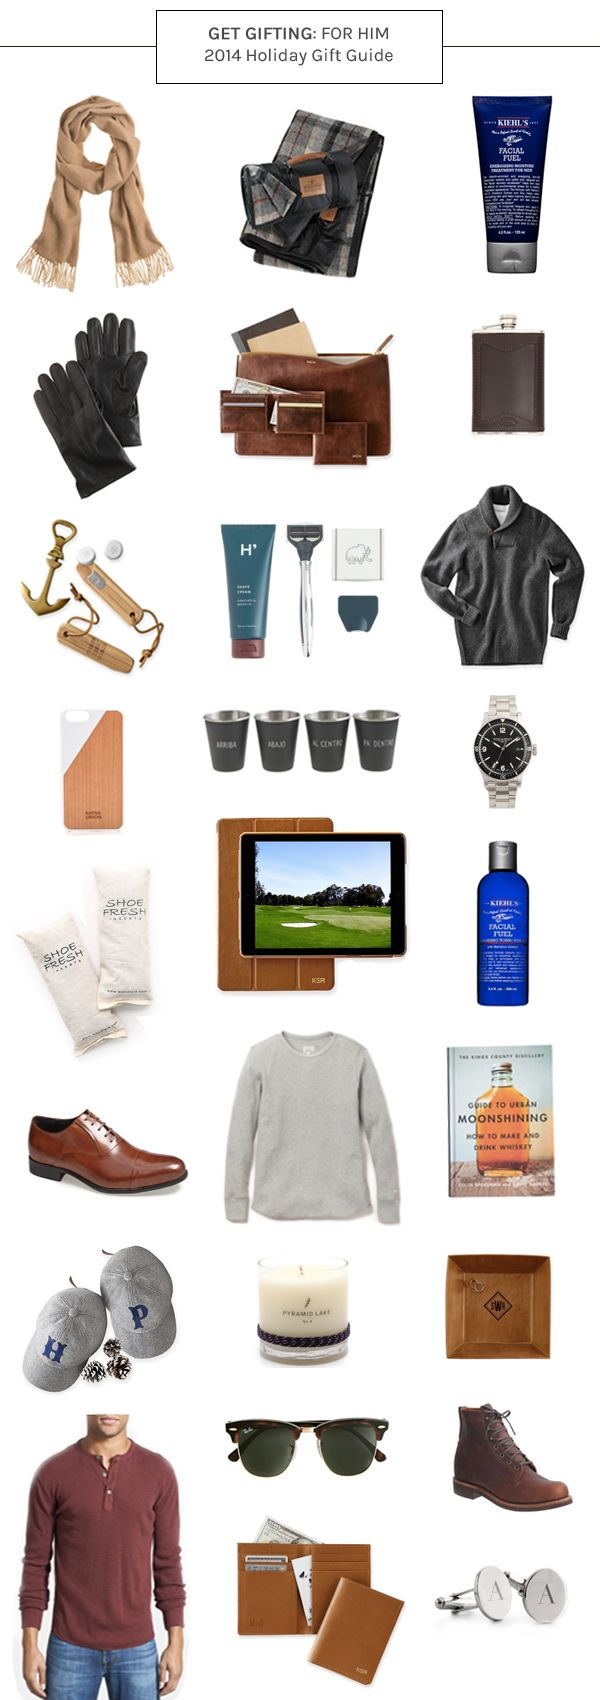 gift guide for him - Best Gifts Christmas 2014